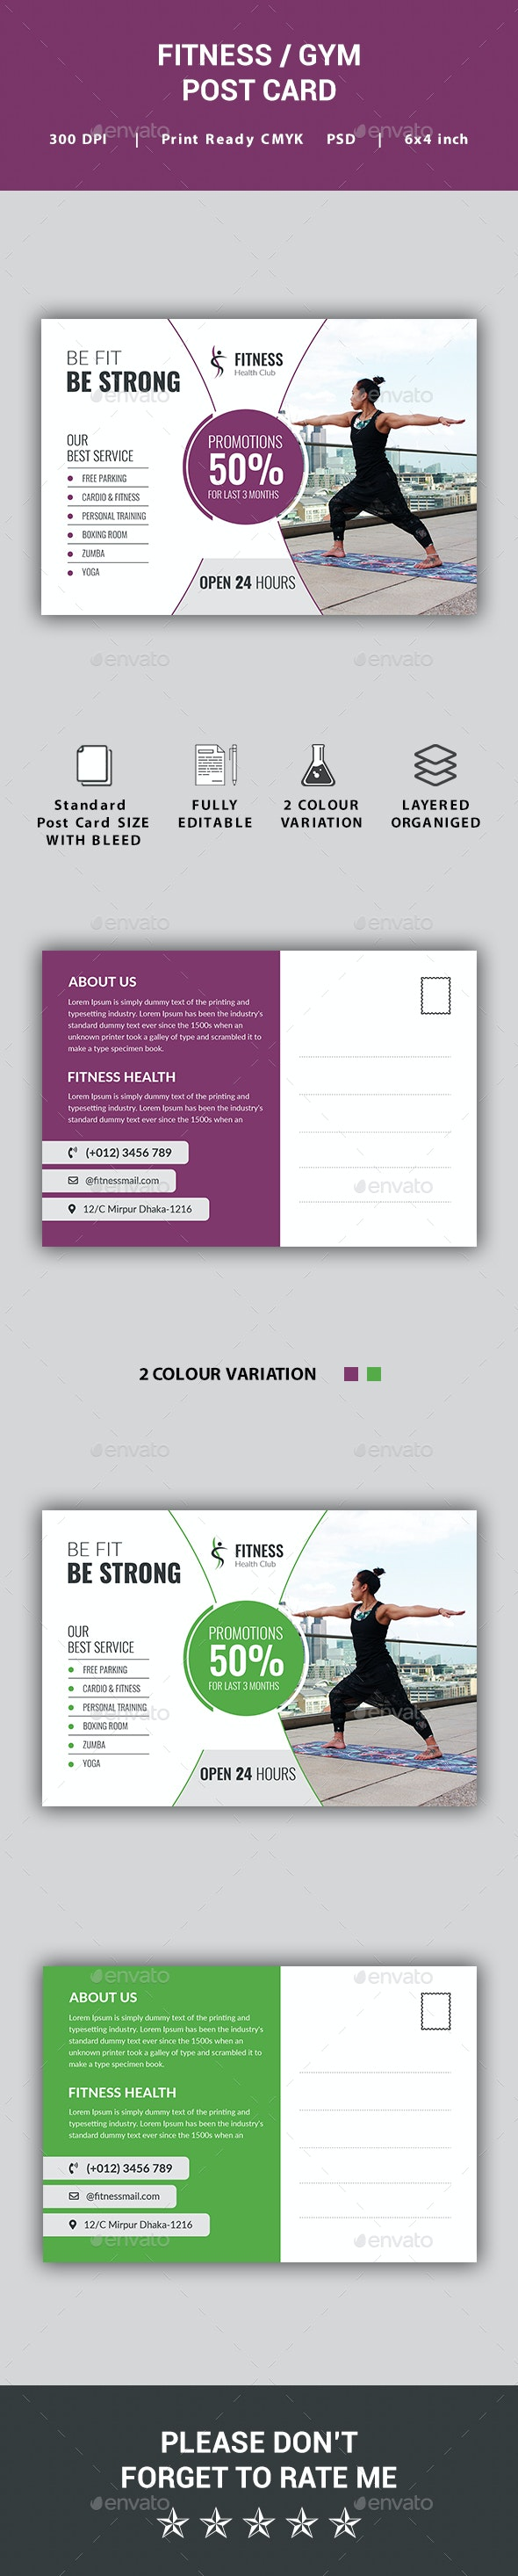 Fitness / Gym Post Card - Cards & Invites Print Templates